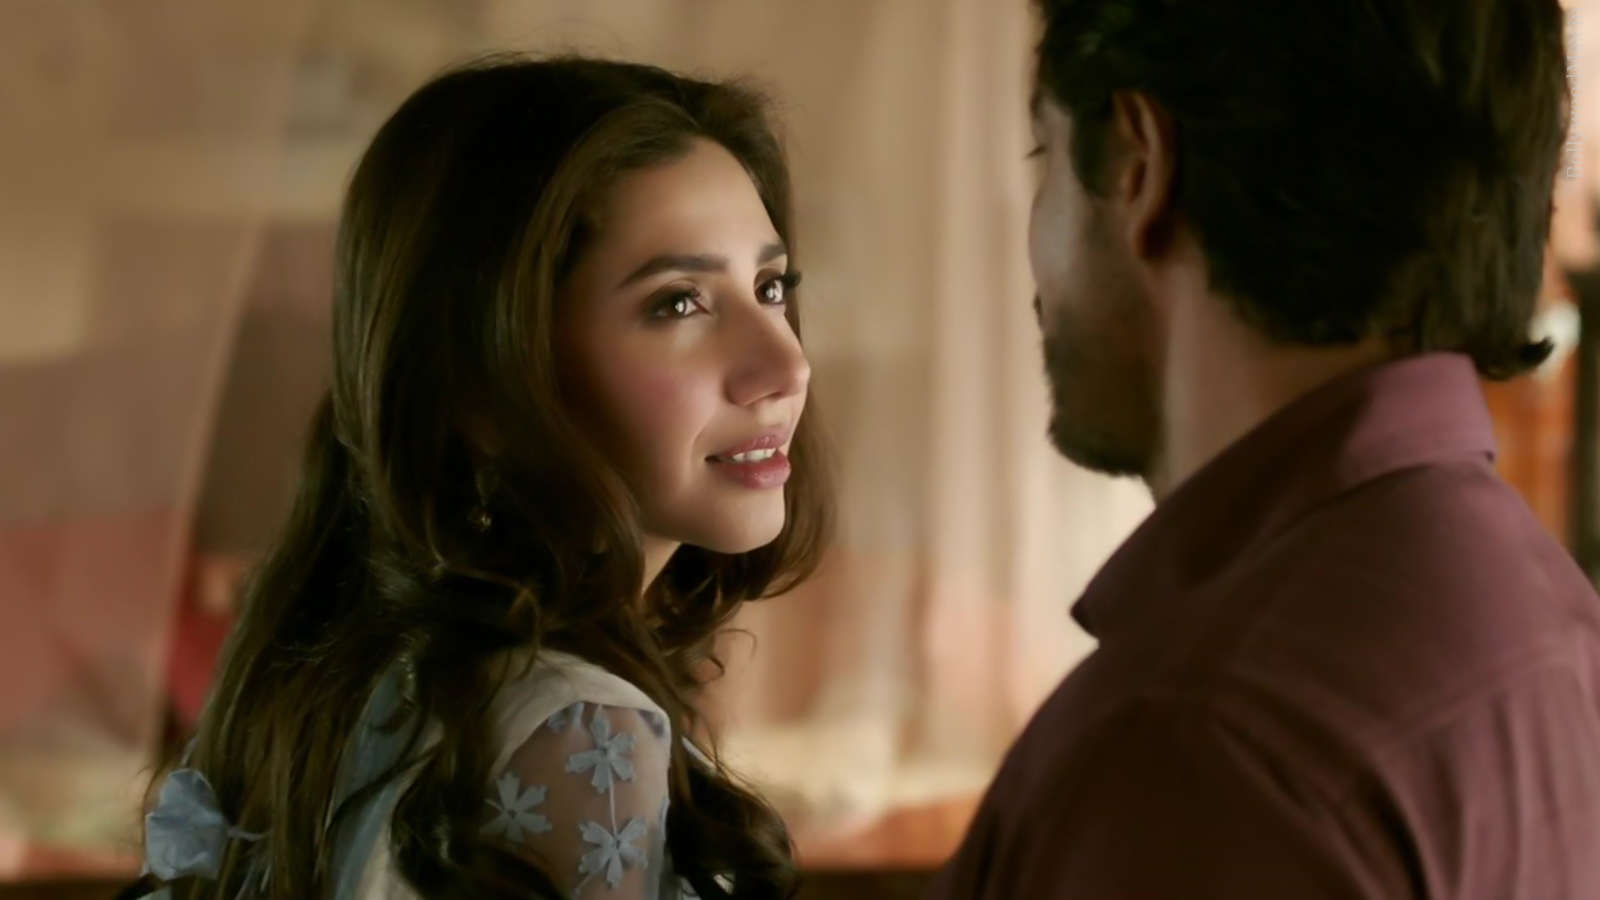 Mahira Khan - Raees - Hot Pakistani Actress Picture And Images-1990